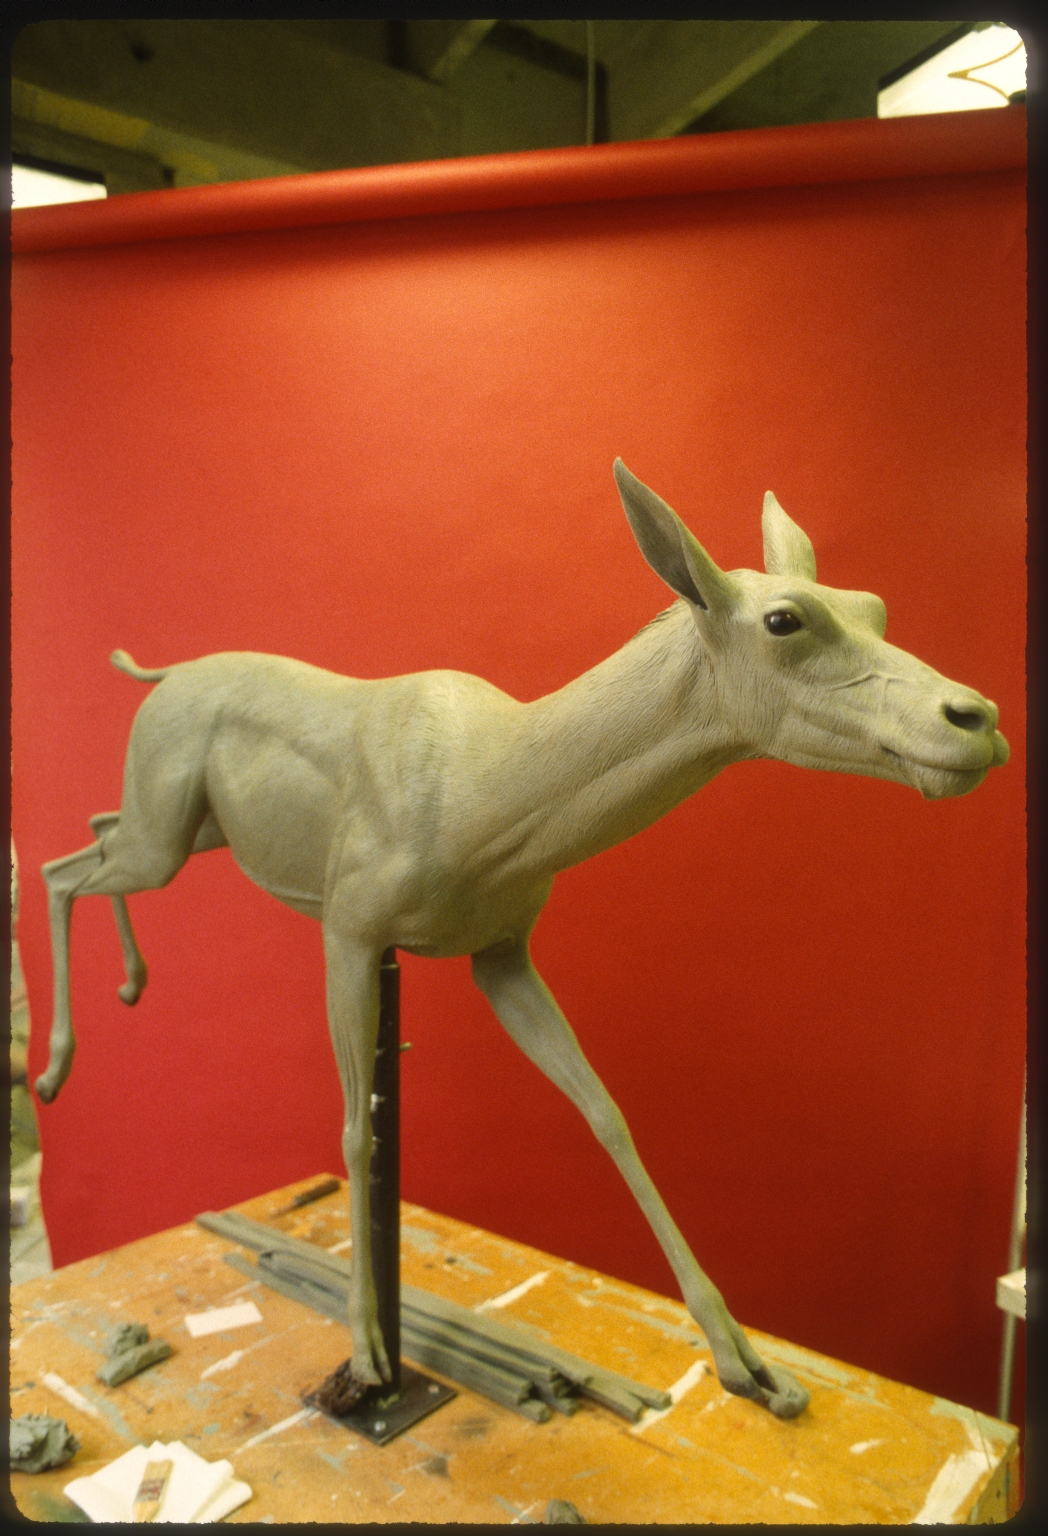 Models of ancient gazelle camels